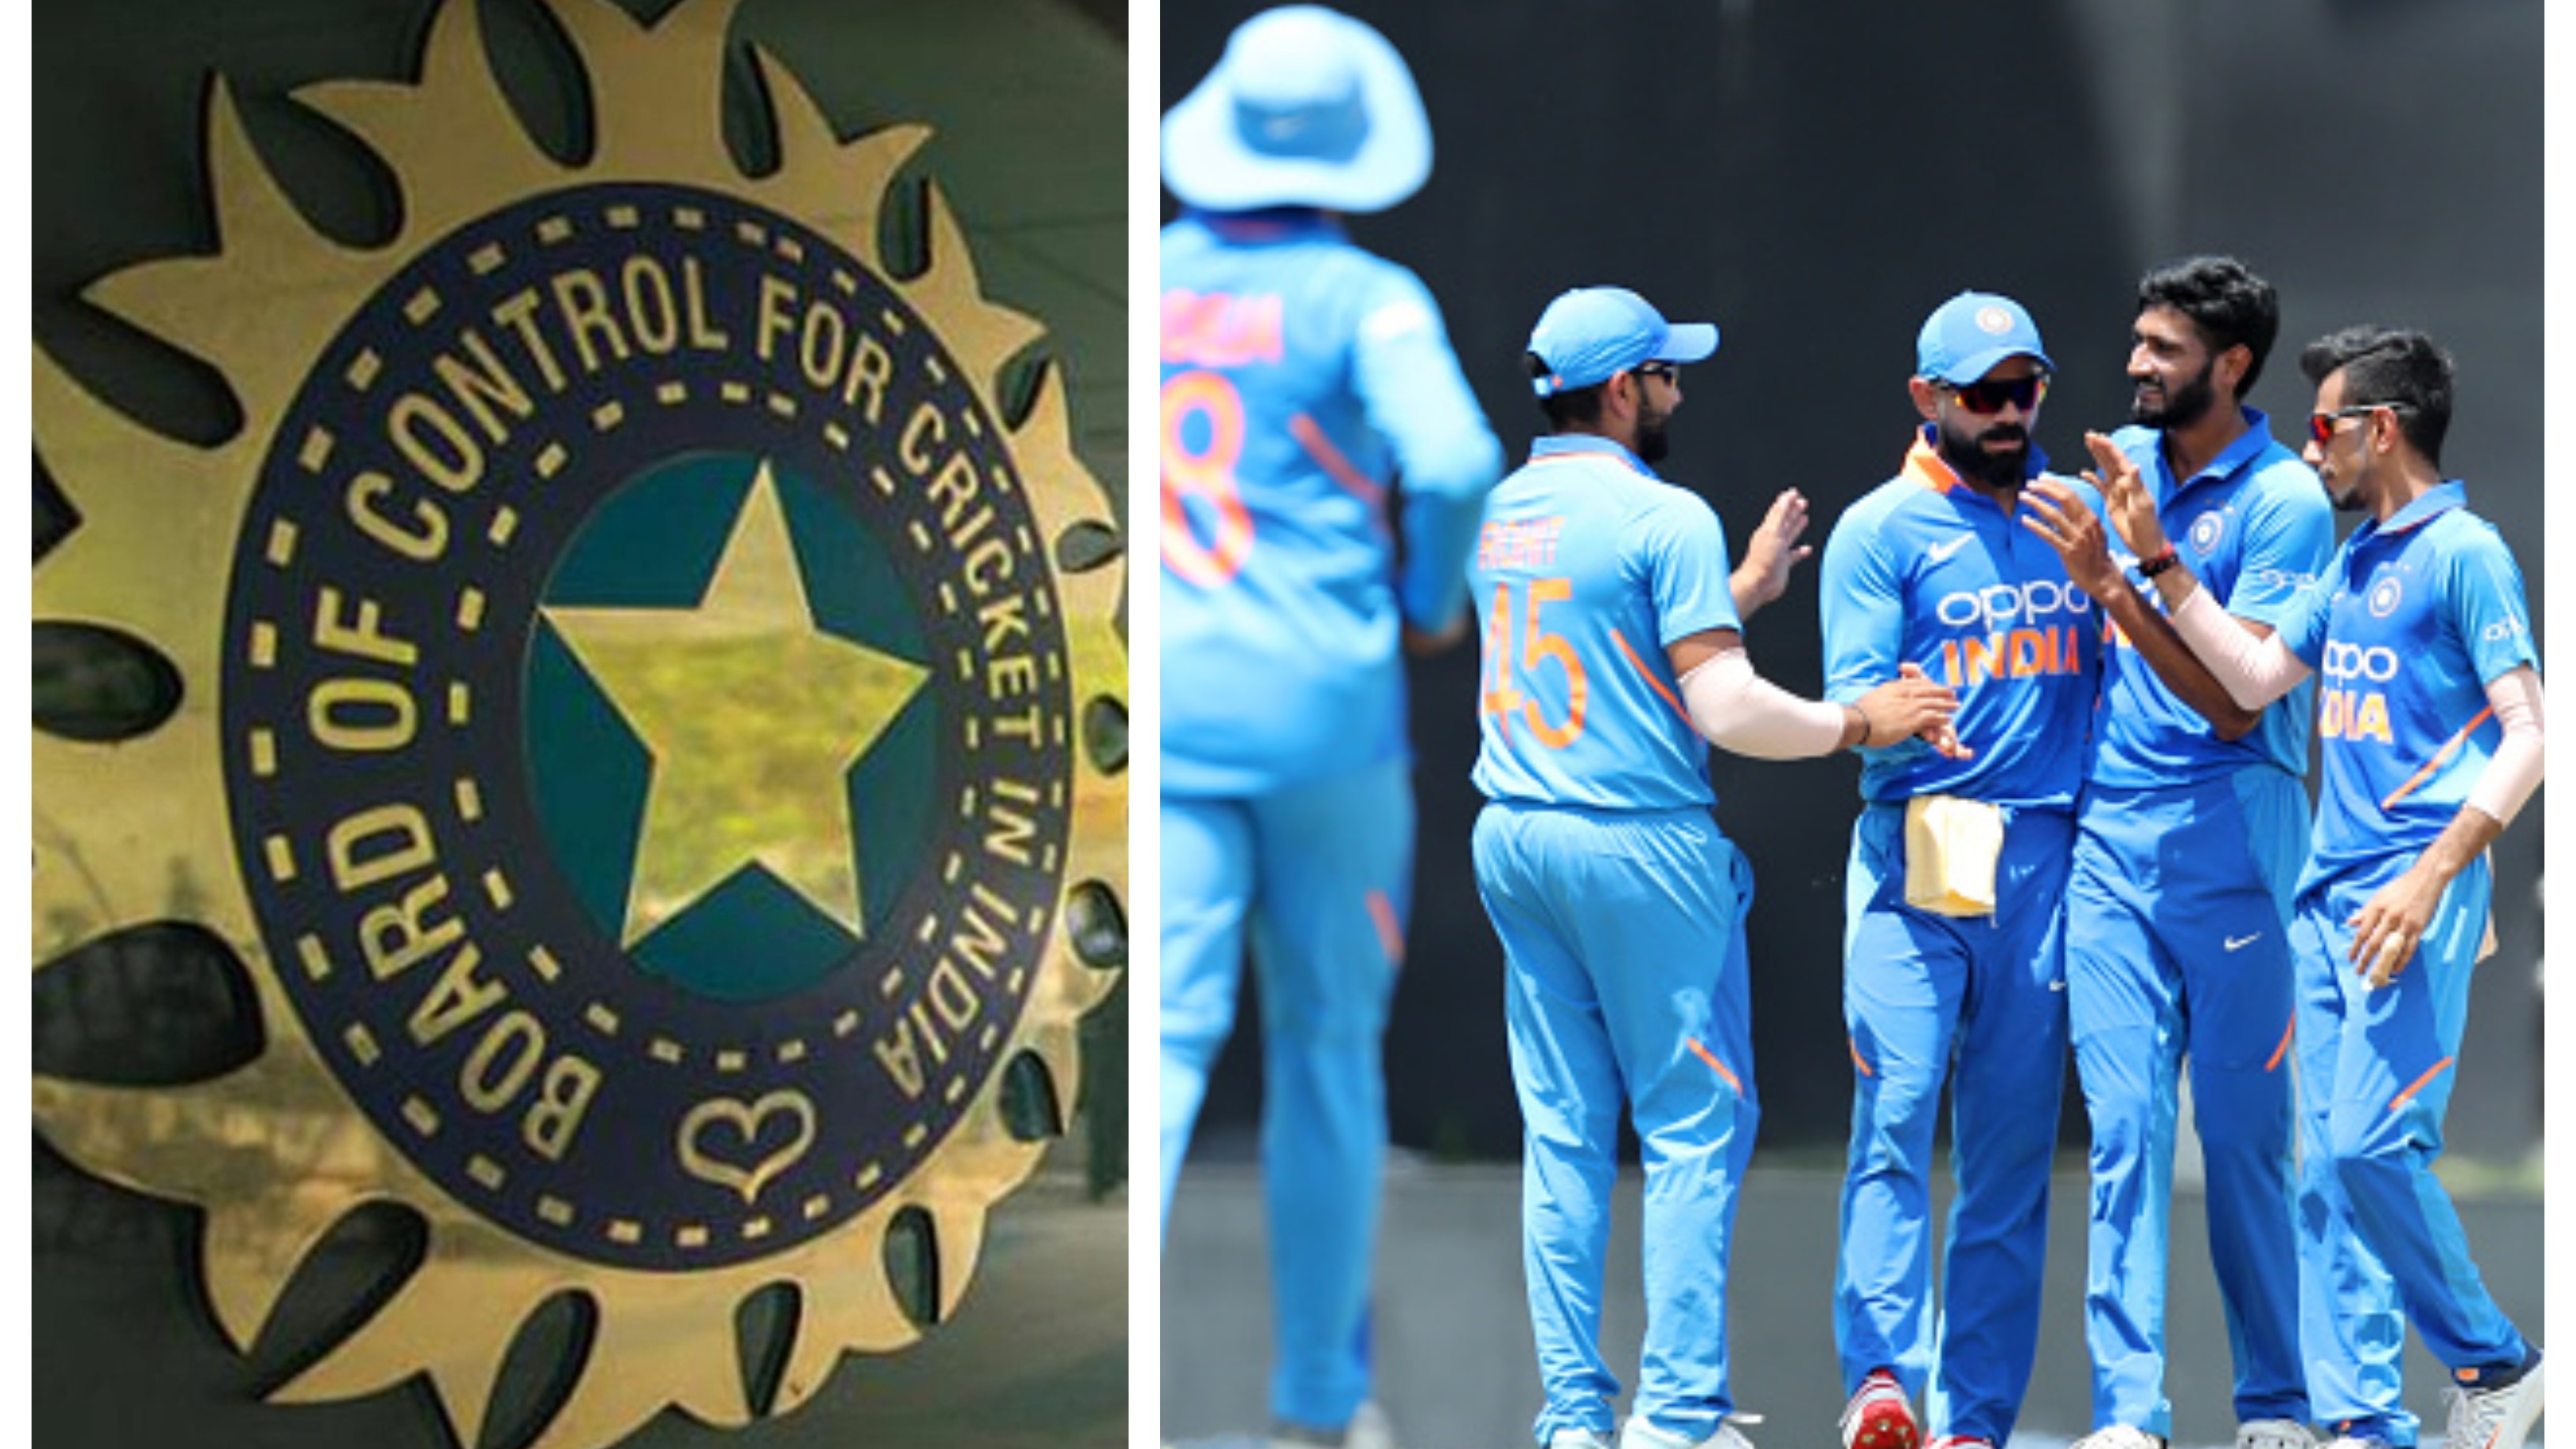 WI v IND 2019: BCCI notifies Indian High Commission in Antigua about hoax terror threat to Team India